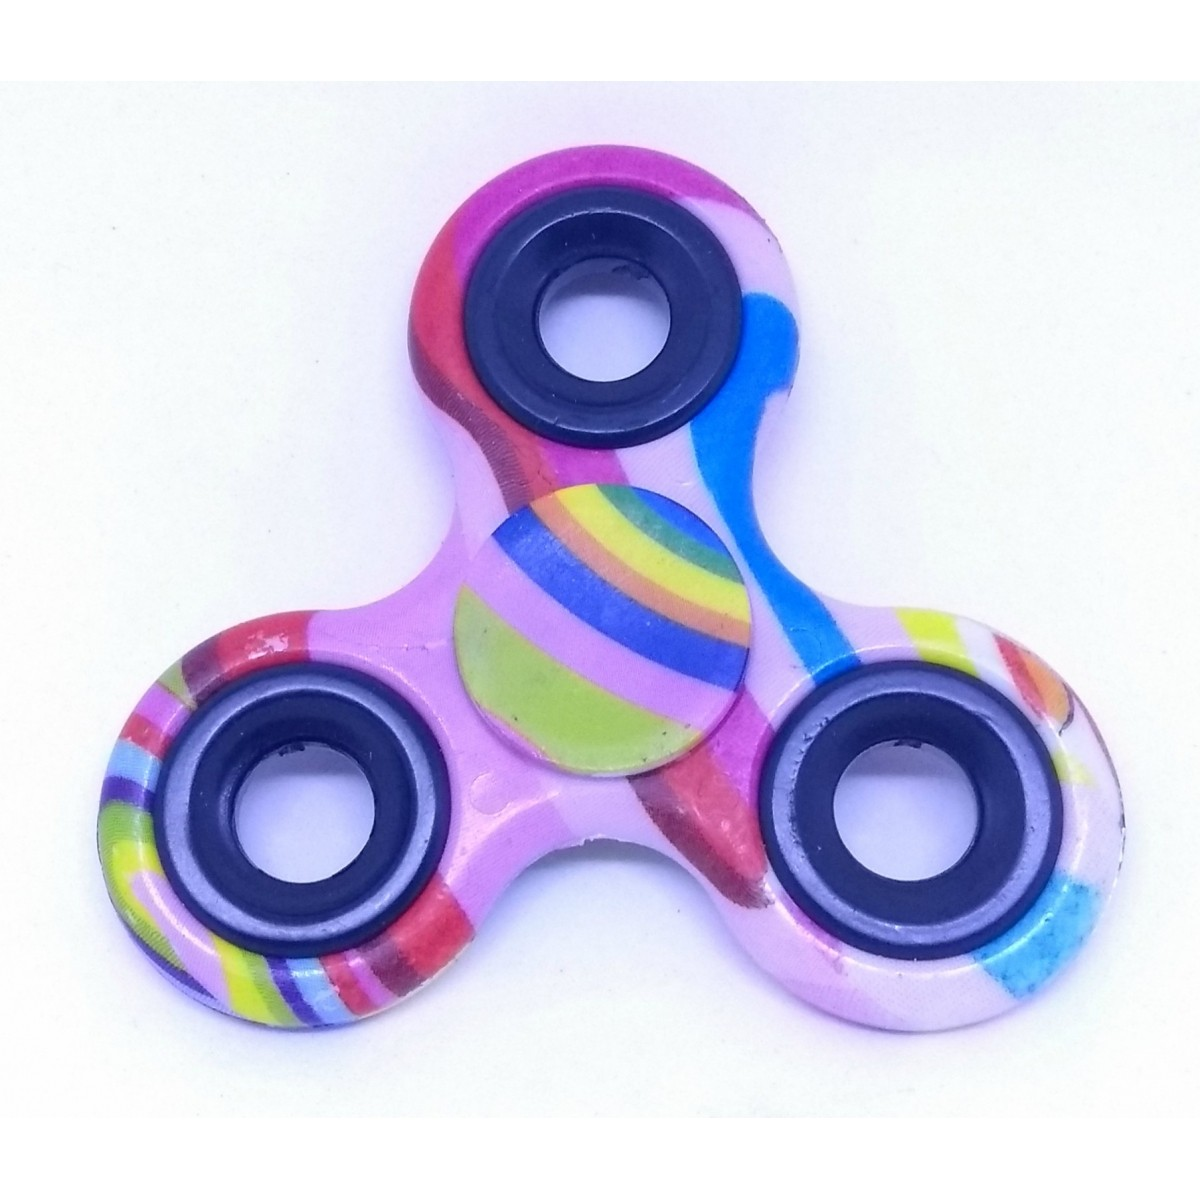 Hand Spinner Coloridos - Rolamento Anti Estresse Fidget Hand Spinner